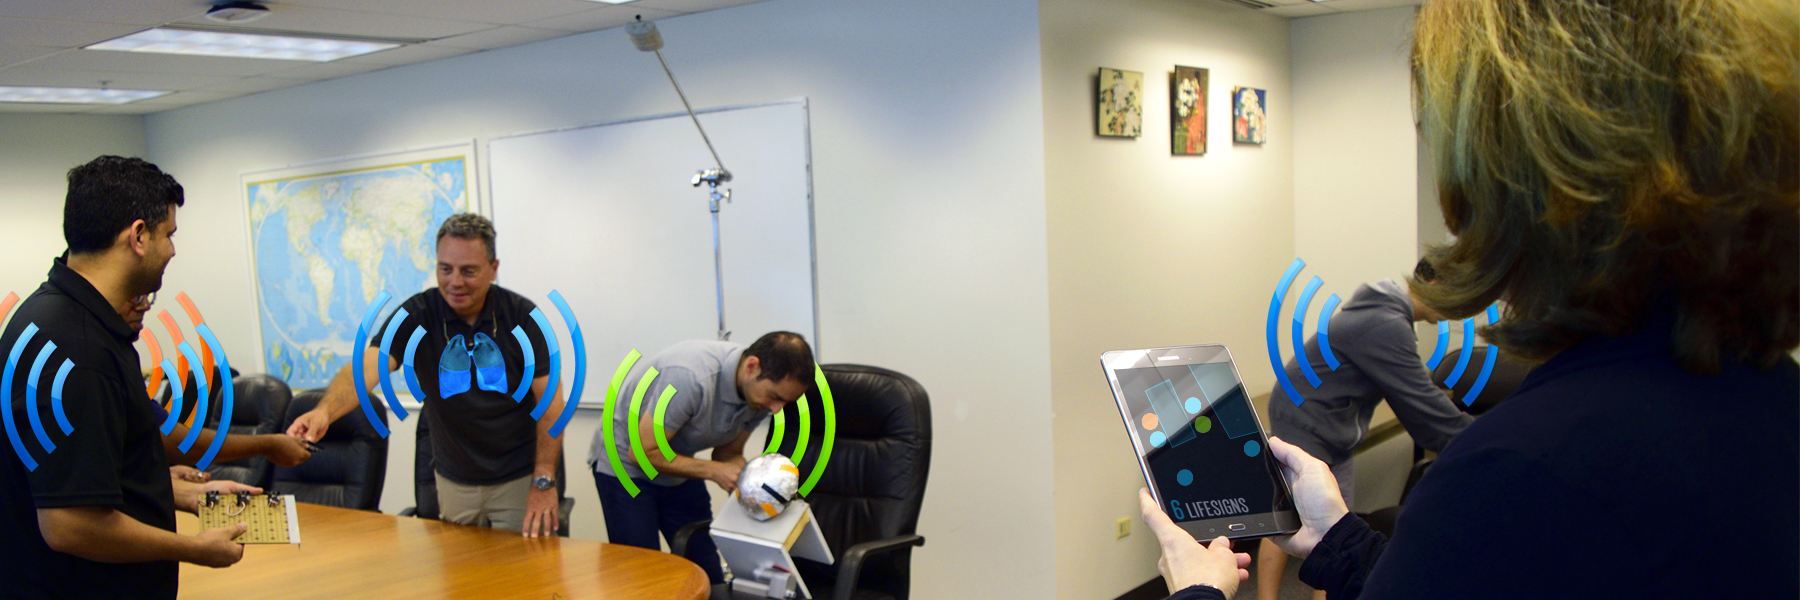 Engineers Work While A Tablet In The Foreground Indicates Six Life-signs Present.